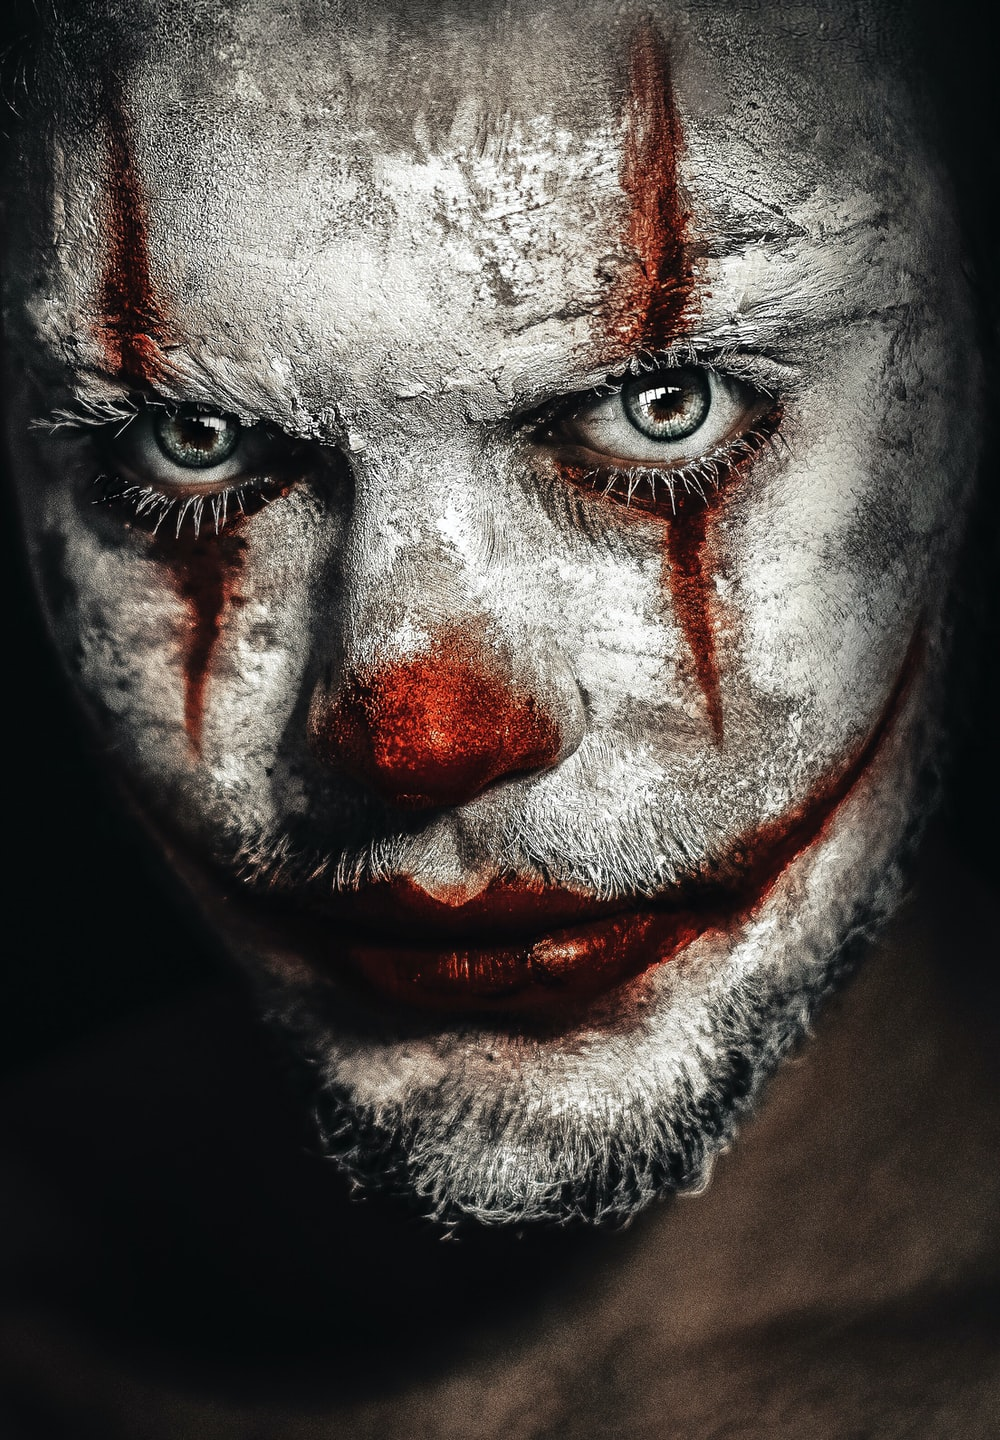 man with clown face painting